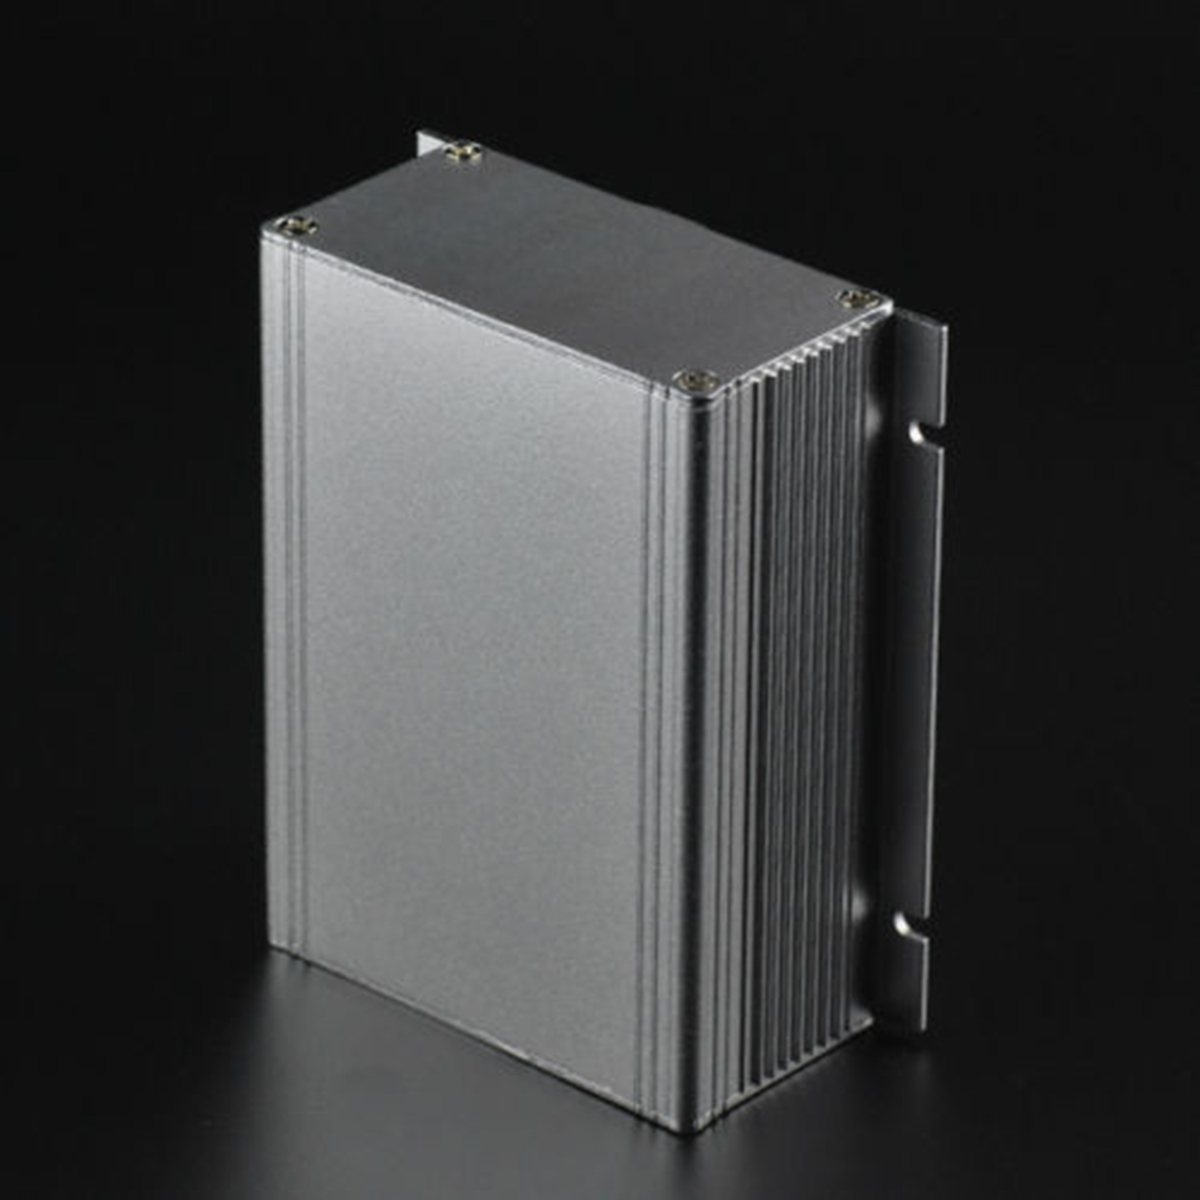 1pc Extruded PCB Instrument Box Aluminum Electronic Power Enclosure Case 88x39x100mm1pc Extruded PCB Instrument Box Aluminum Electronic Power Enclosure Case 88x39x100mm